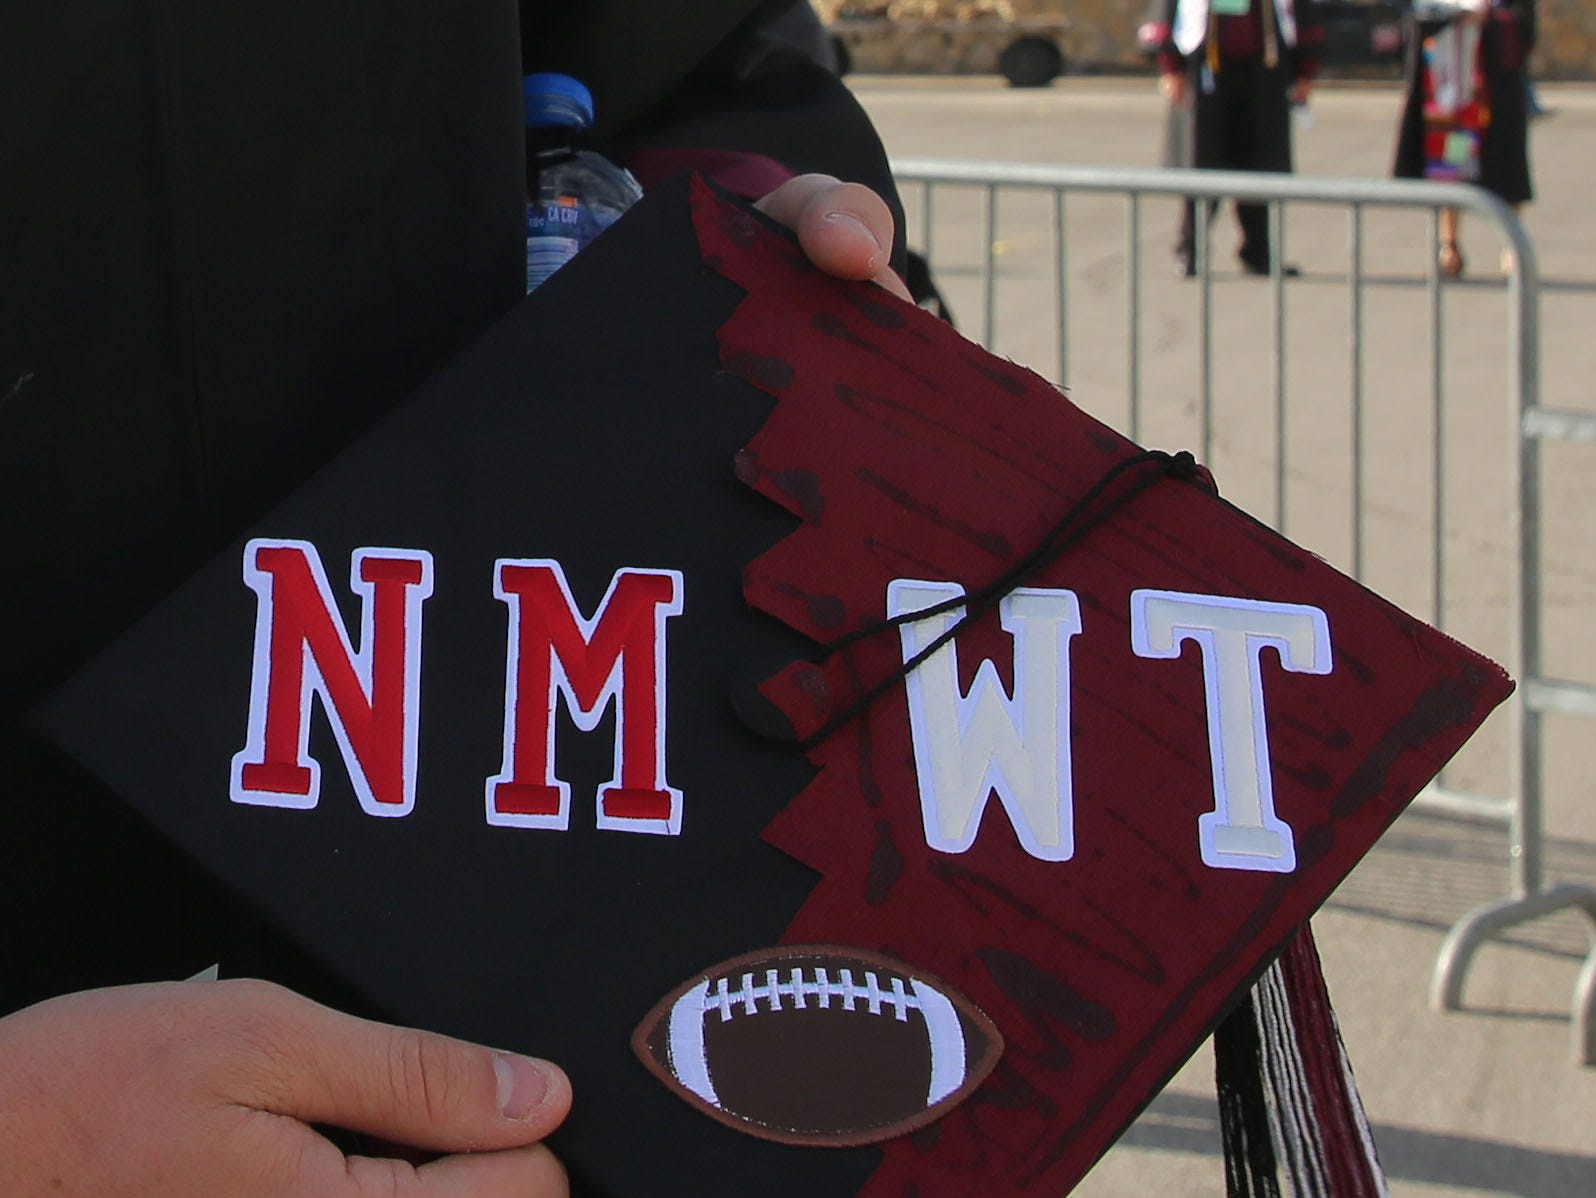 Eventually, Garrett Gibson, who earned a degree in general business entrepreneurship, wants to start his own business. He's not quite sure what his business will be, but it's definitely something he's excited about. His first two years of college were spent playing football at West Texas A&M University, and his last two years were spent at New Mexico State. HIs mortarboard reflects what he learned at both schools, he said.